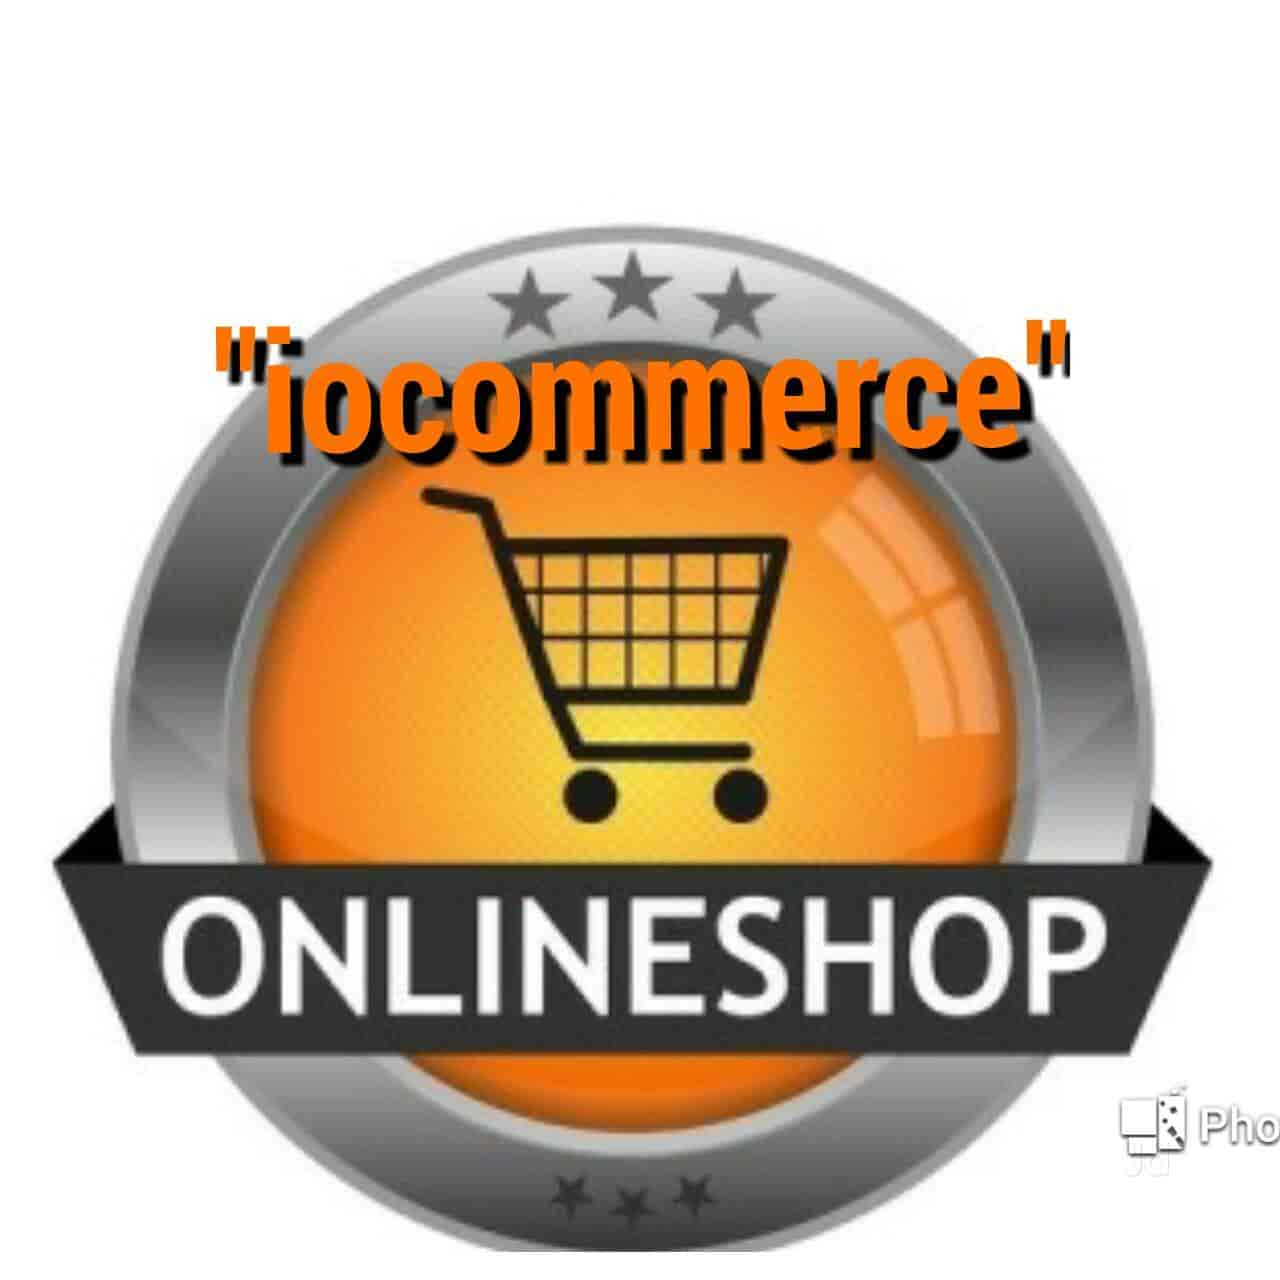 23fefd6a2583 ... Iocommerce Online Shop For All.. Photos